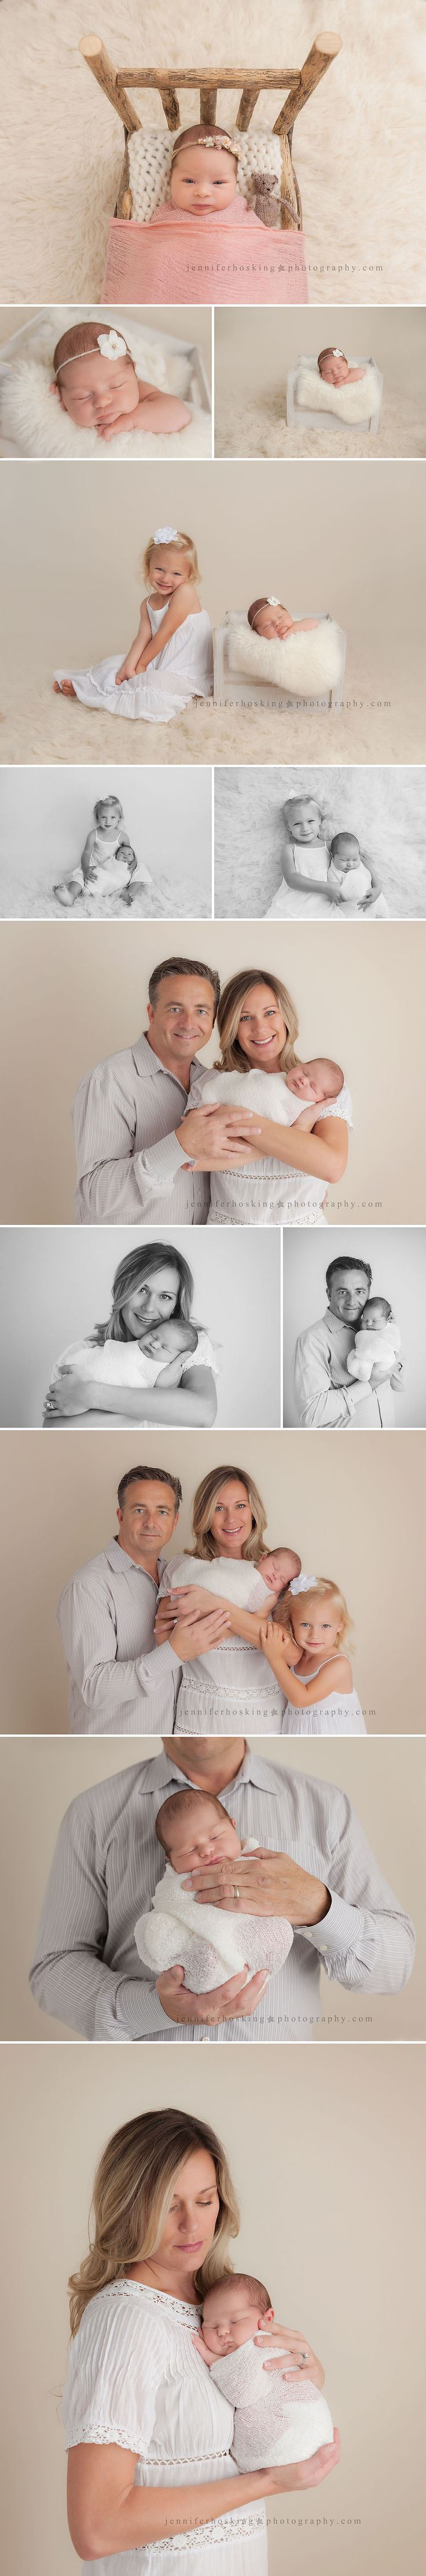 Newborn and Family Session Jennifer Hosking Photography